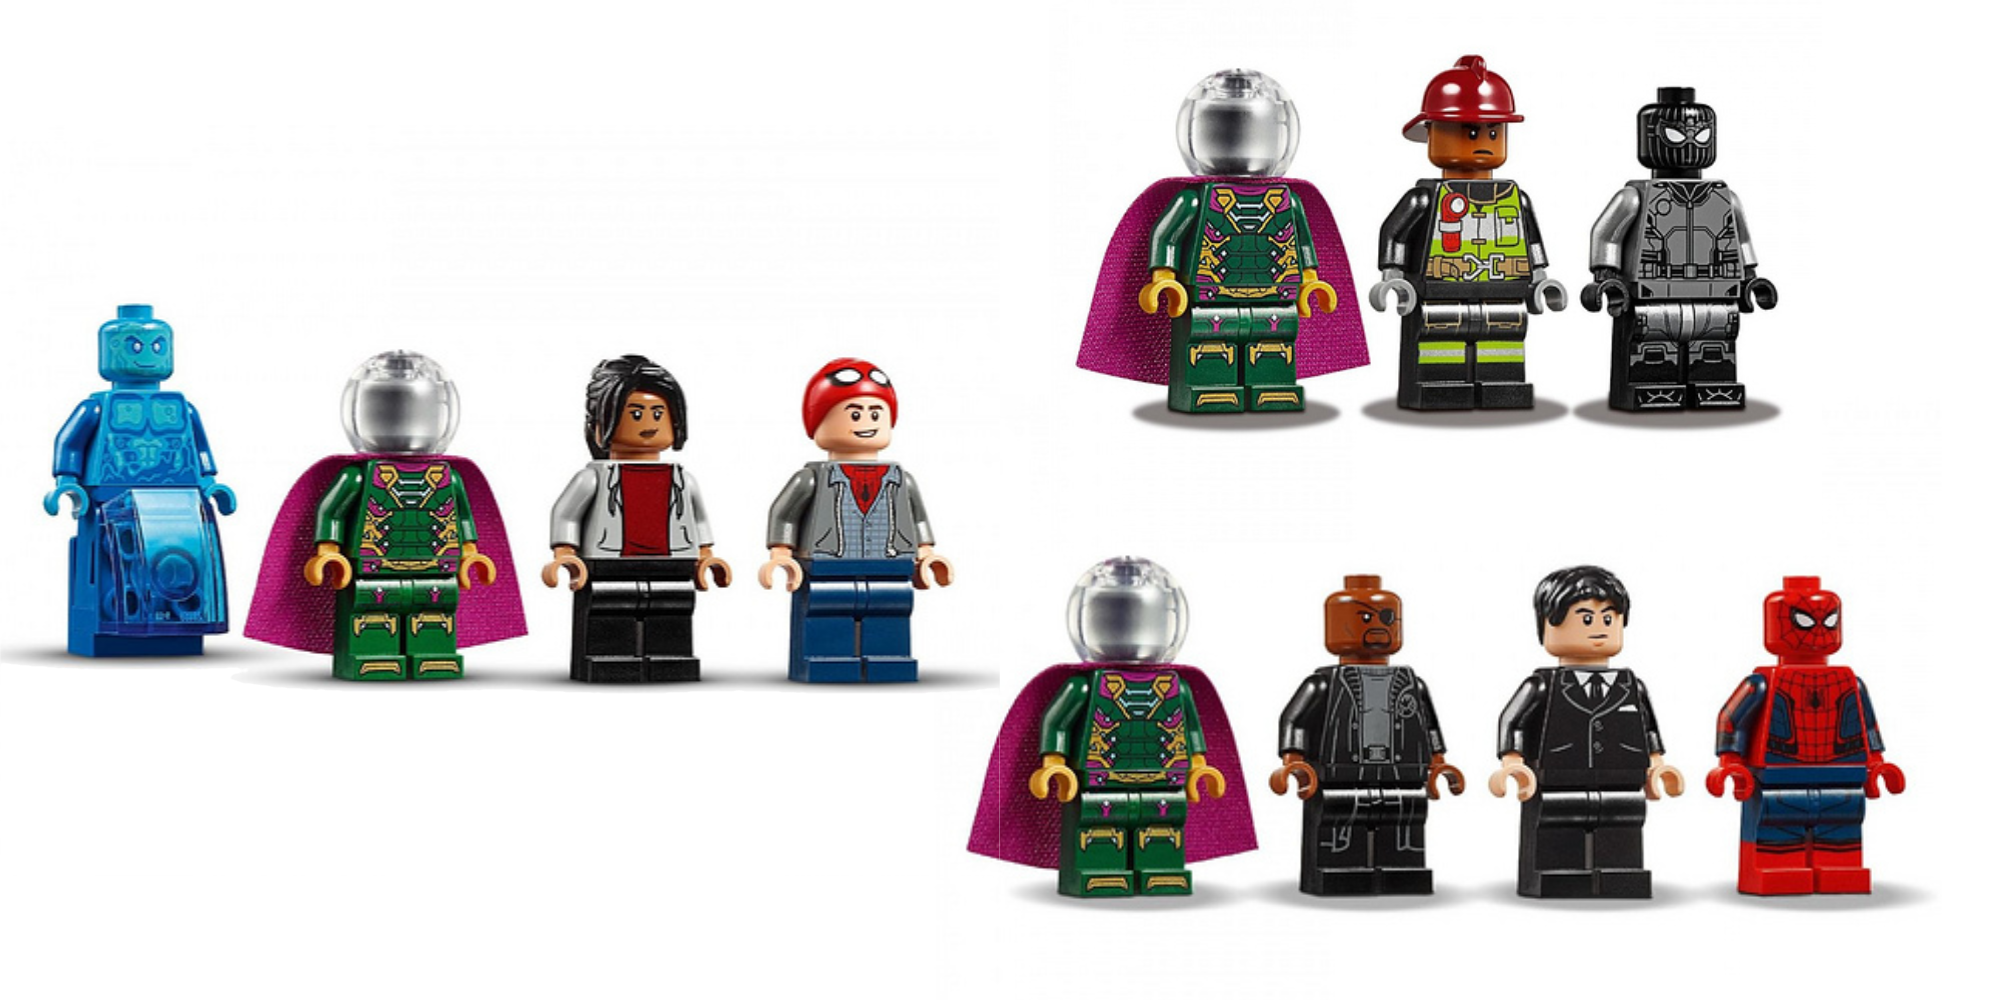 LEGO Spider-Man: Far From Home minifigures